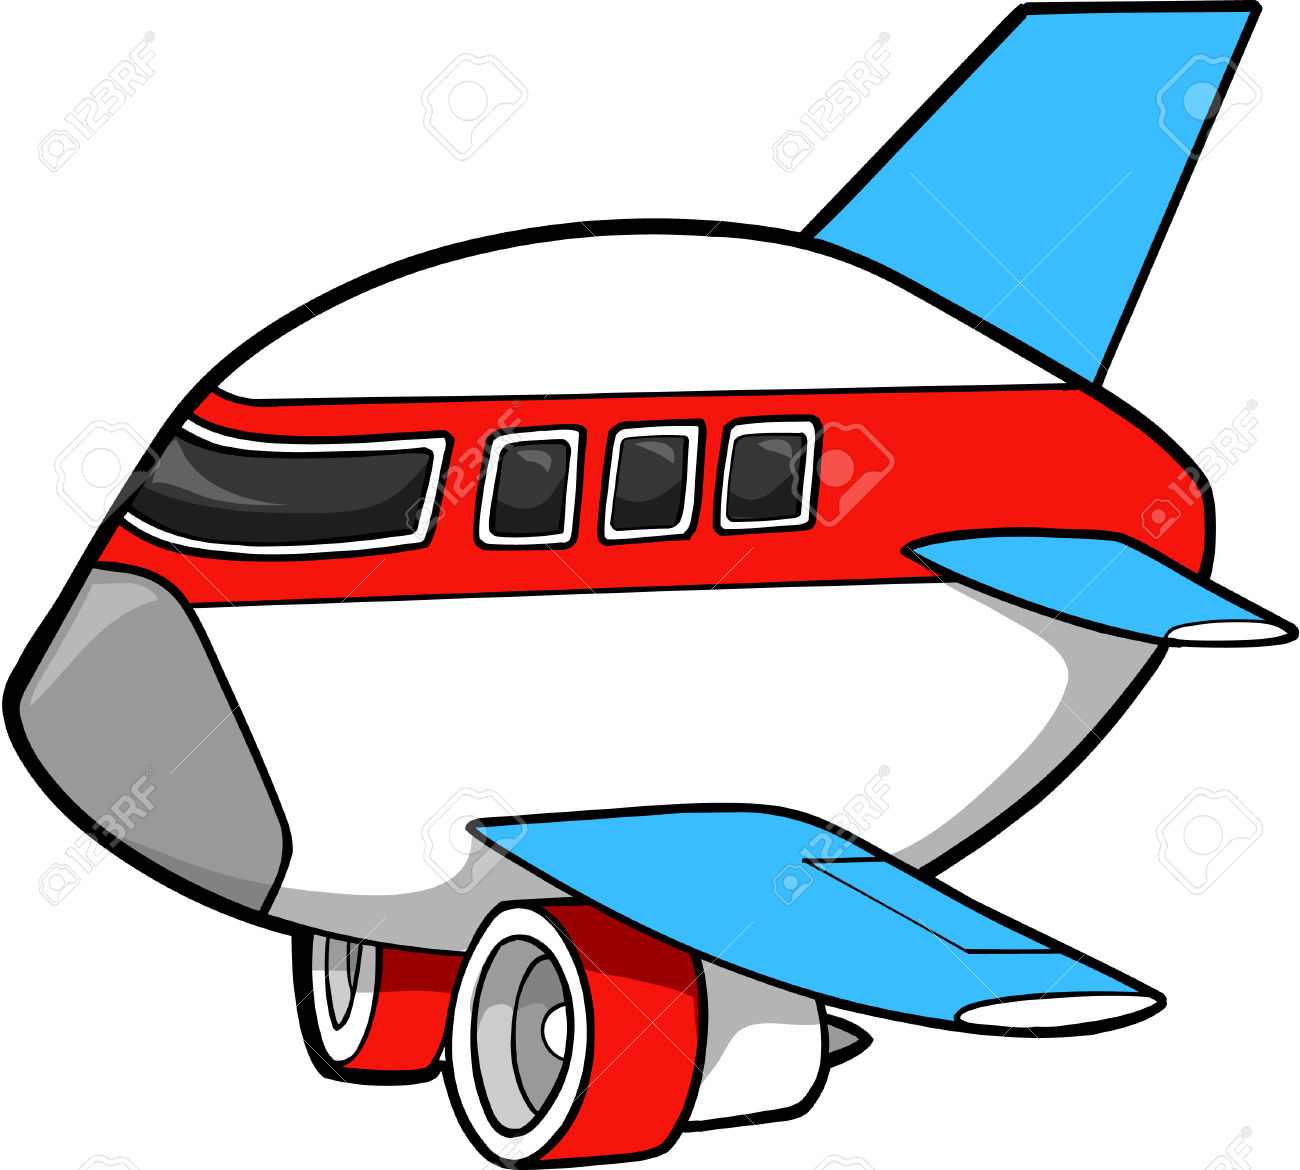 Jumbo Jet Vector Illustration Royalty Free Cliparts, Vectors, And.